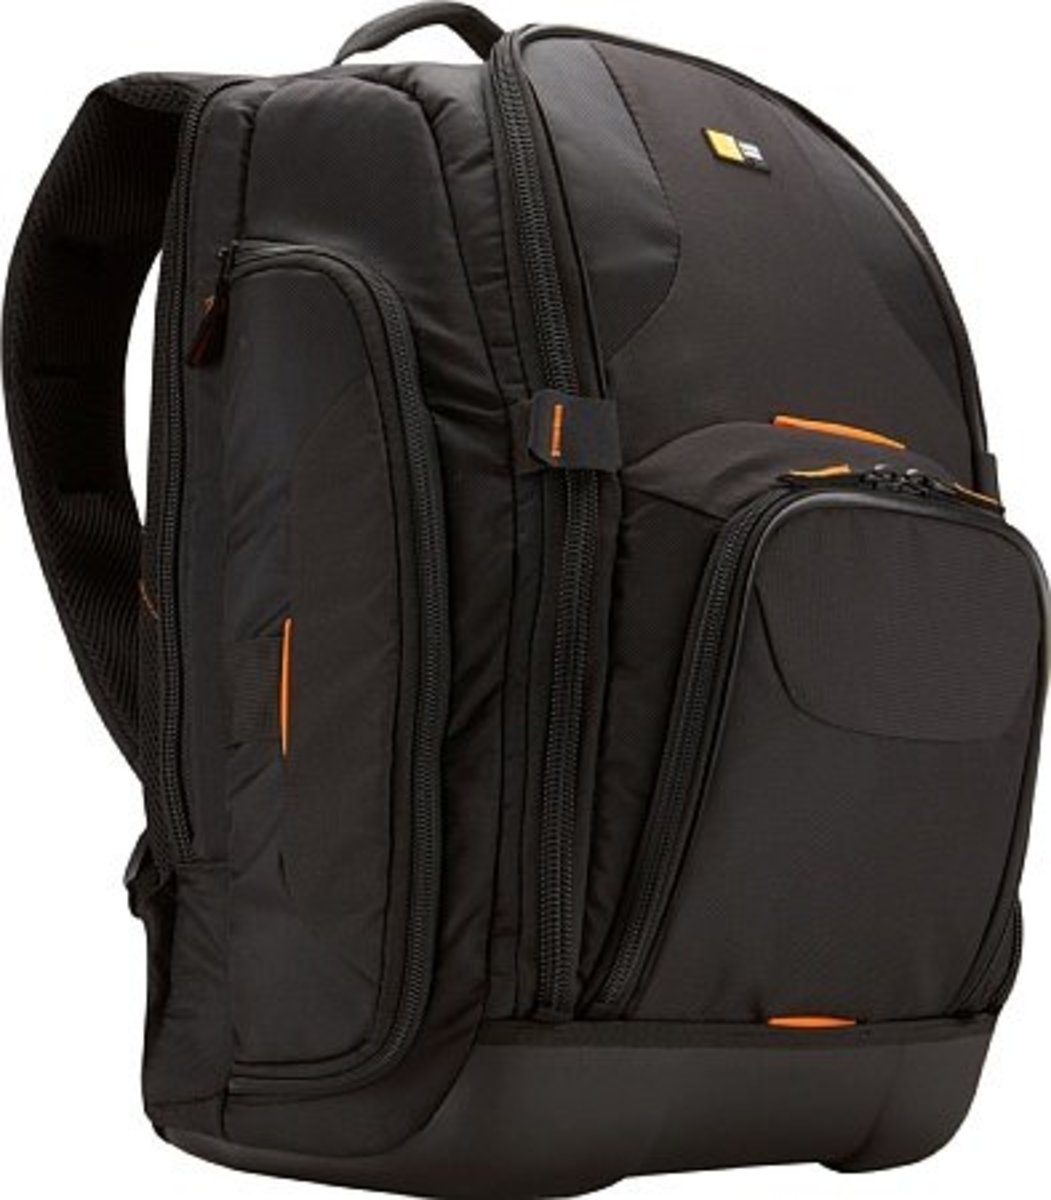 My Review of the Case Logic SLRC-206 Camera Backpack